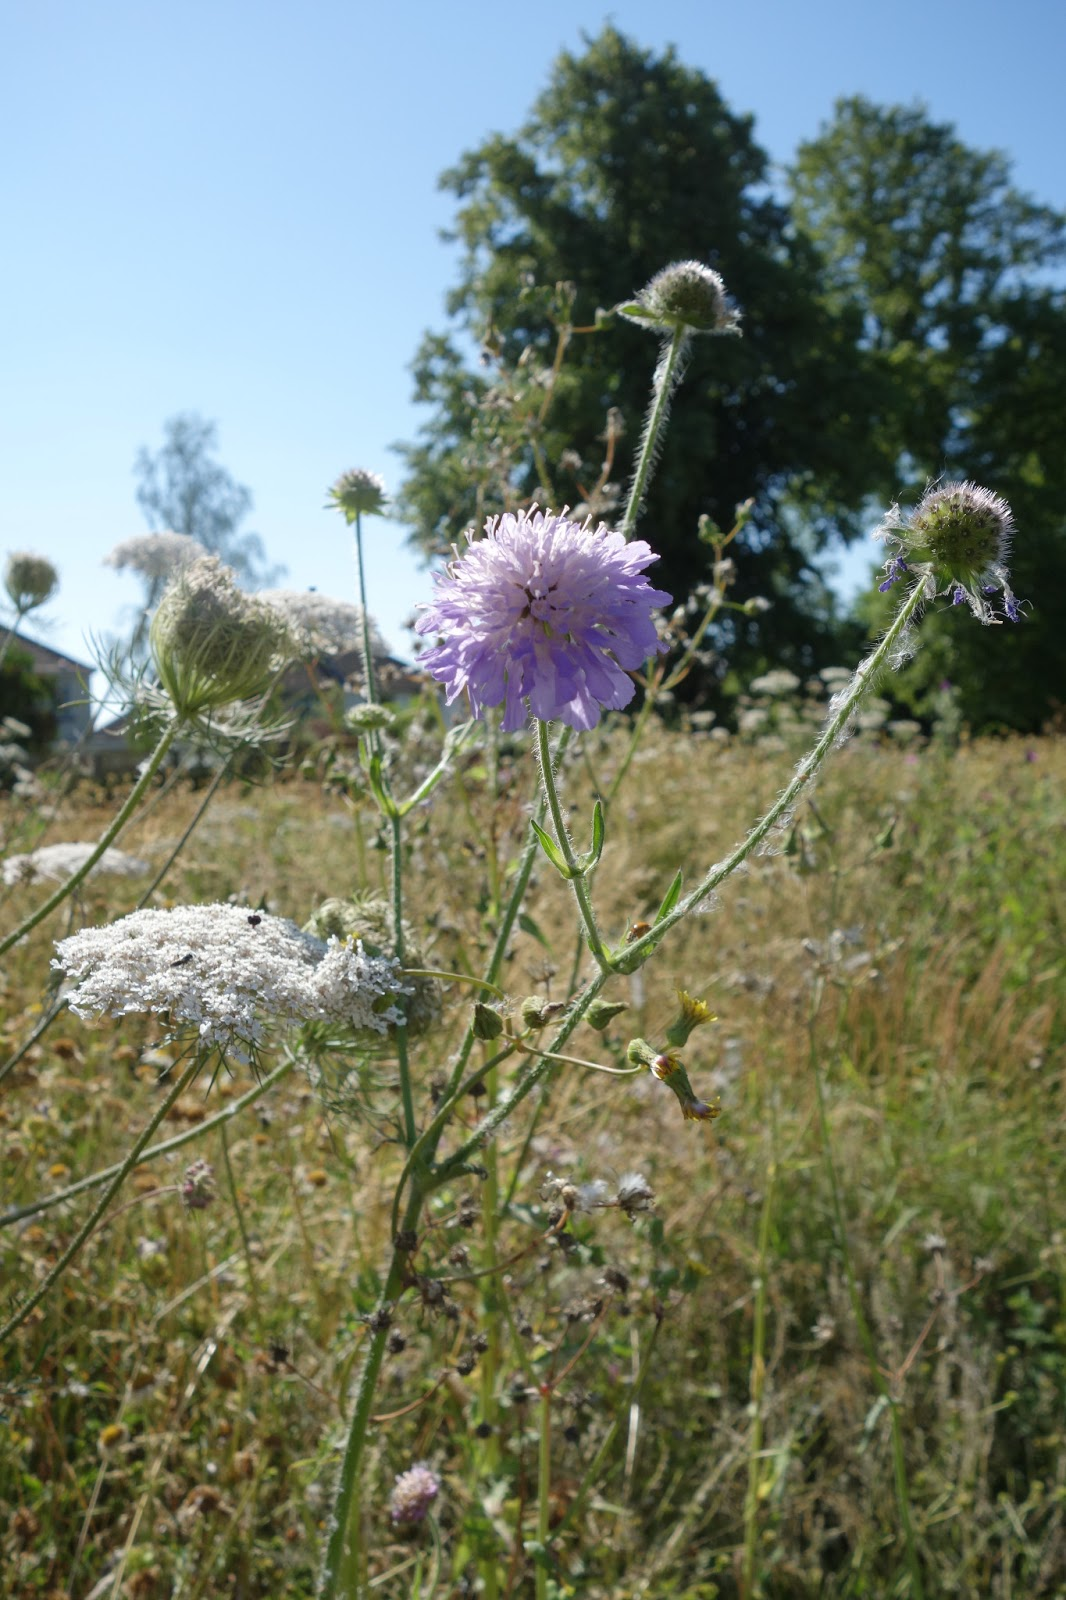 Urban pollinators what plants are flowering in our perennial meadows flower head with many small pink to purple flowers on tall leafless hairy stems hairy greyish green pinnate leaves izmirmasajfo Images